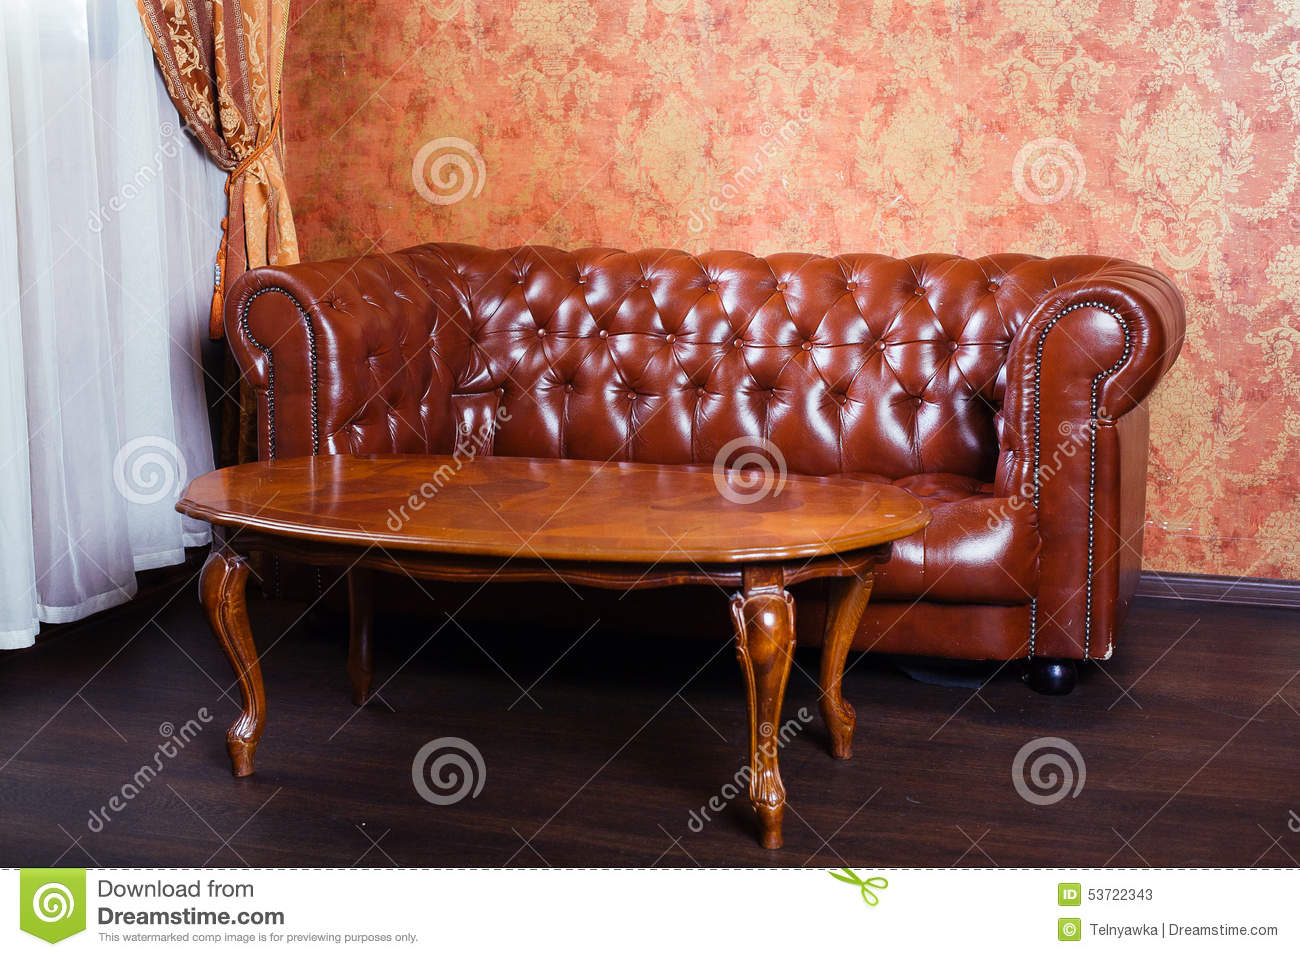 Leather Sofa Vintage Style Luxury Interior Stock Photo  : leather sofa vintage style luxury interior 53722343 from dreamstime.com size 1300 x 957 jpeg 203kB